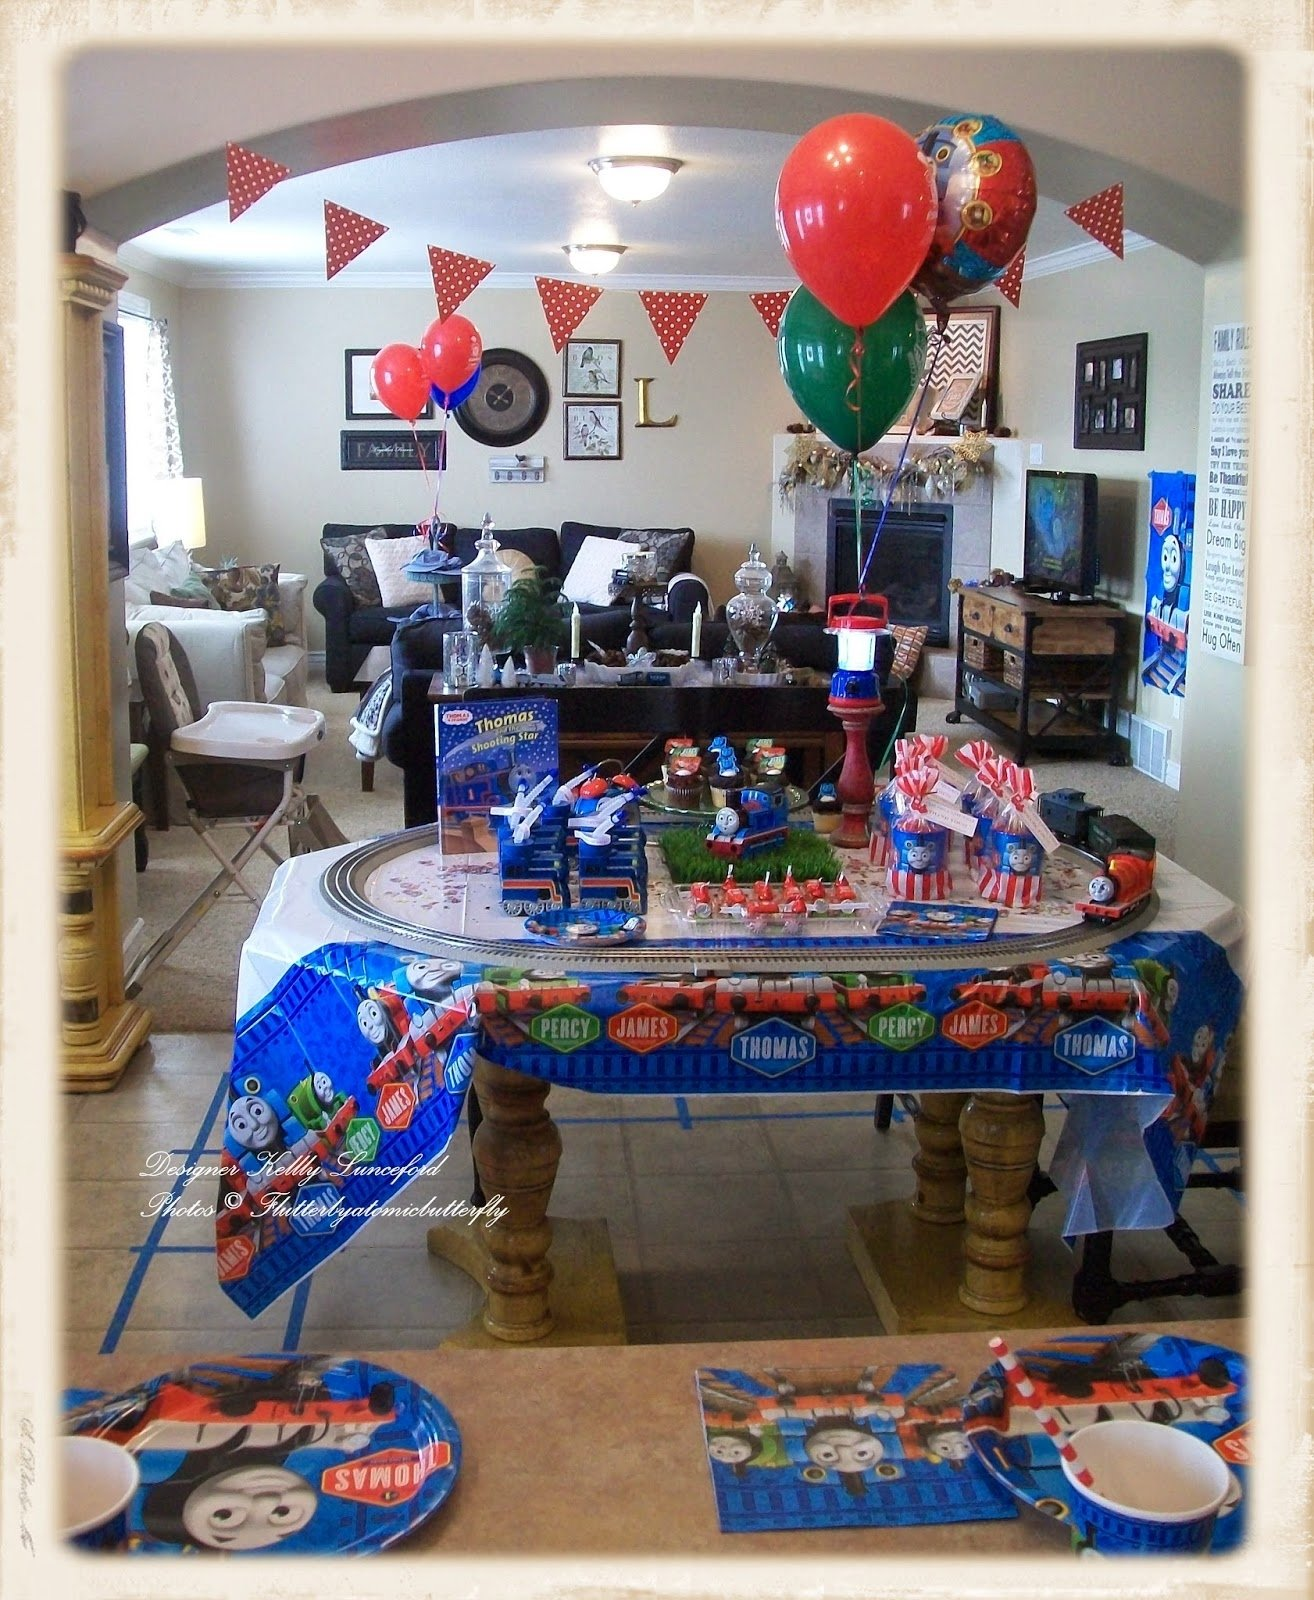 10 Most Recommended Thomas The Tank Engine Party Ideas flutteratomicbutterfly january 2015